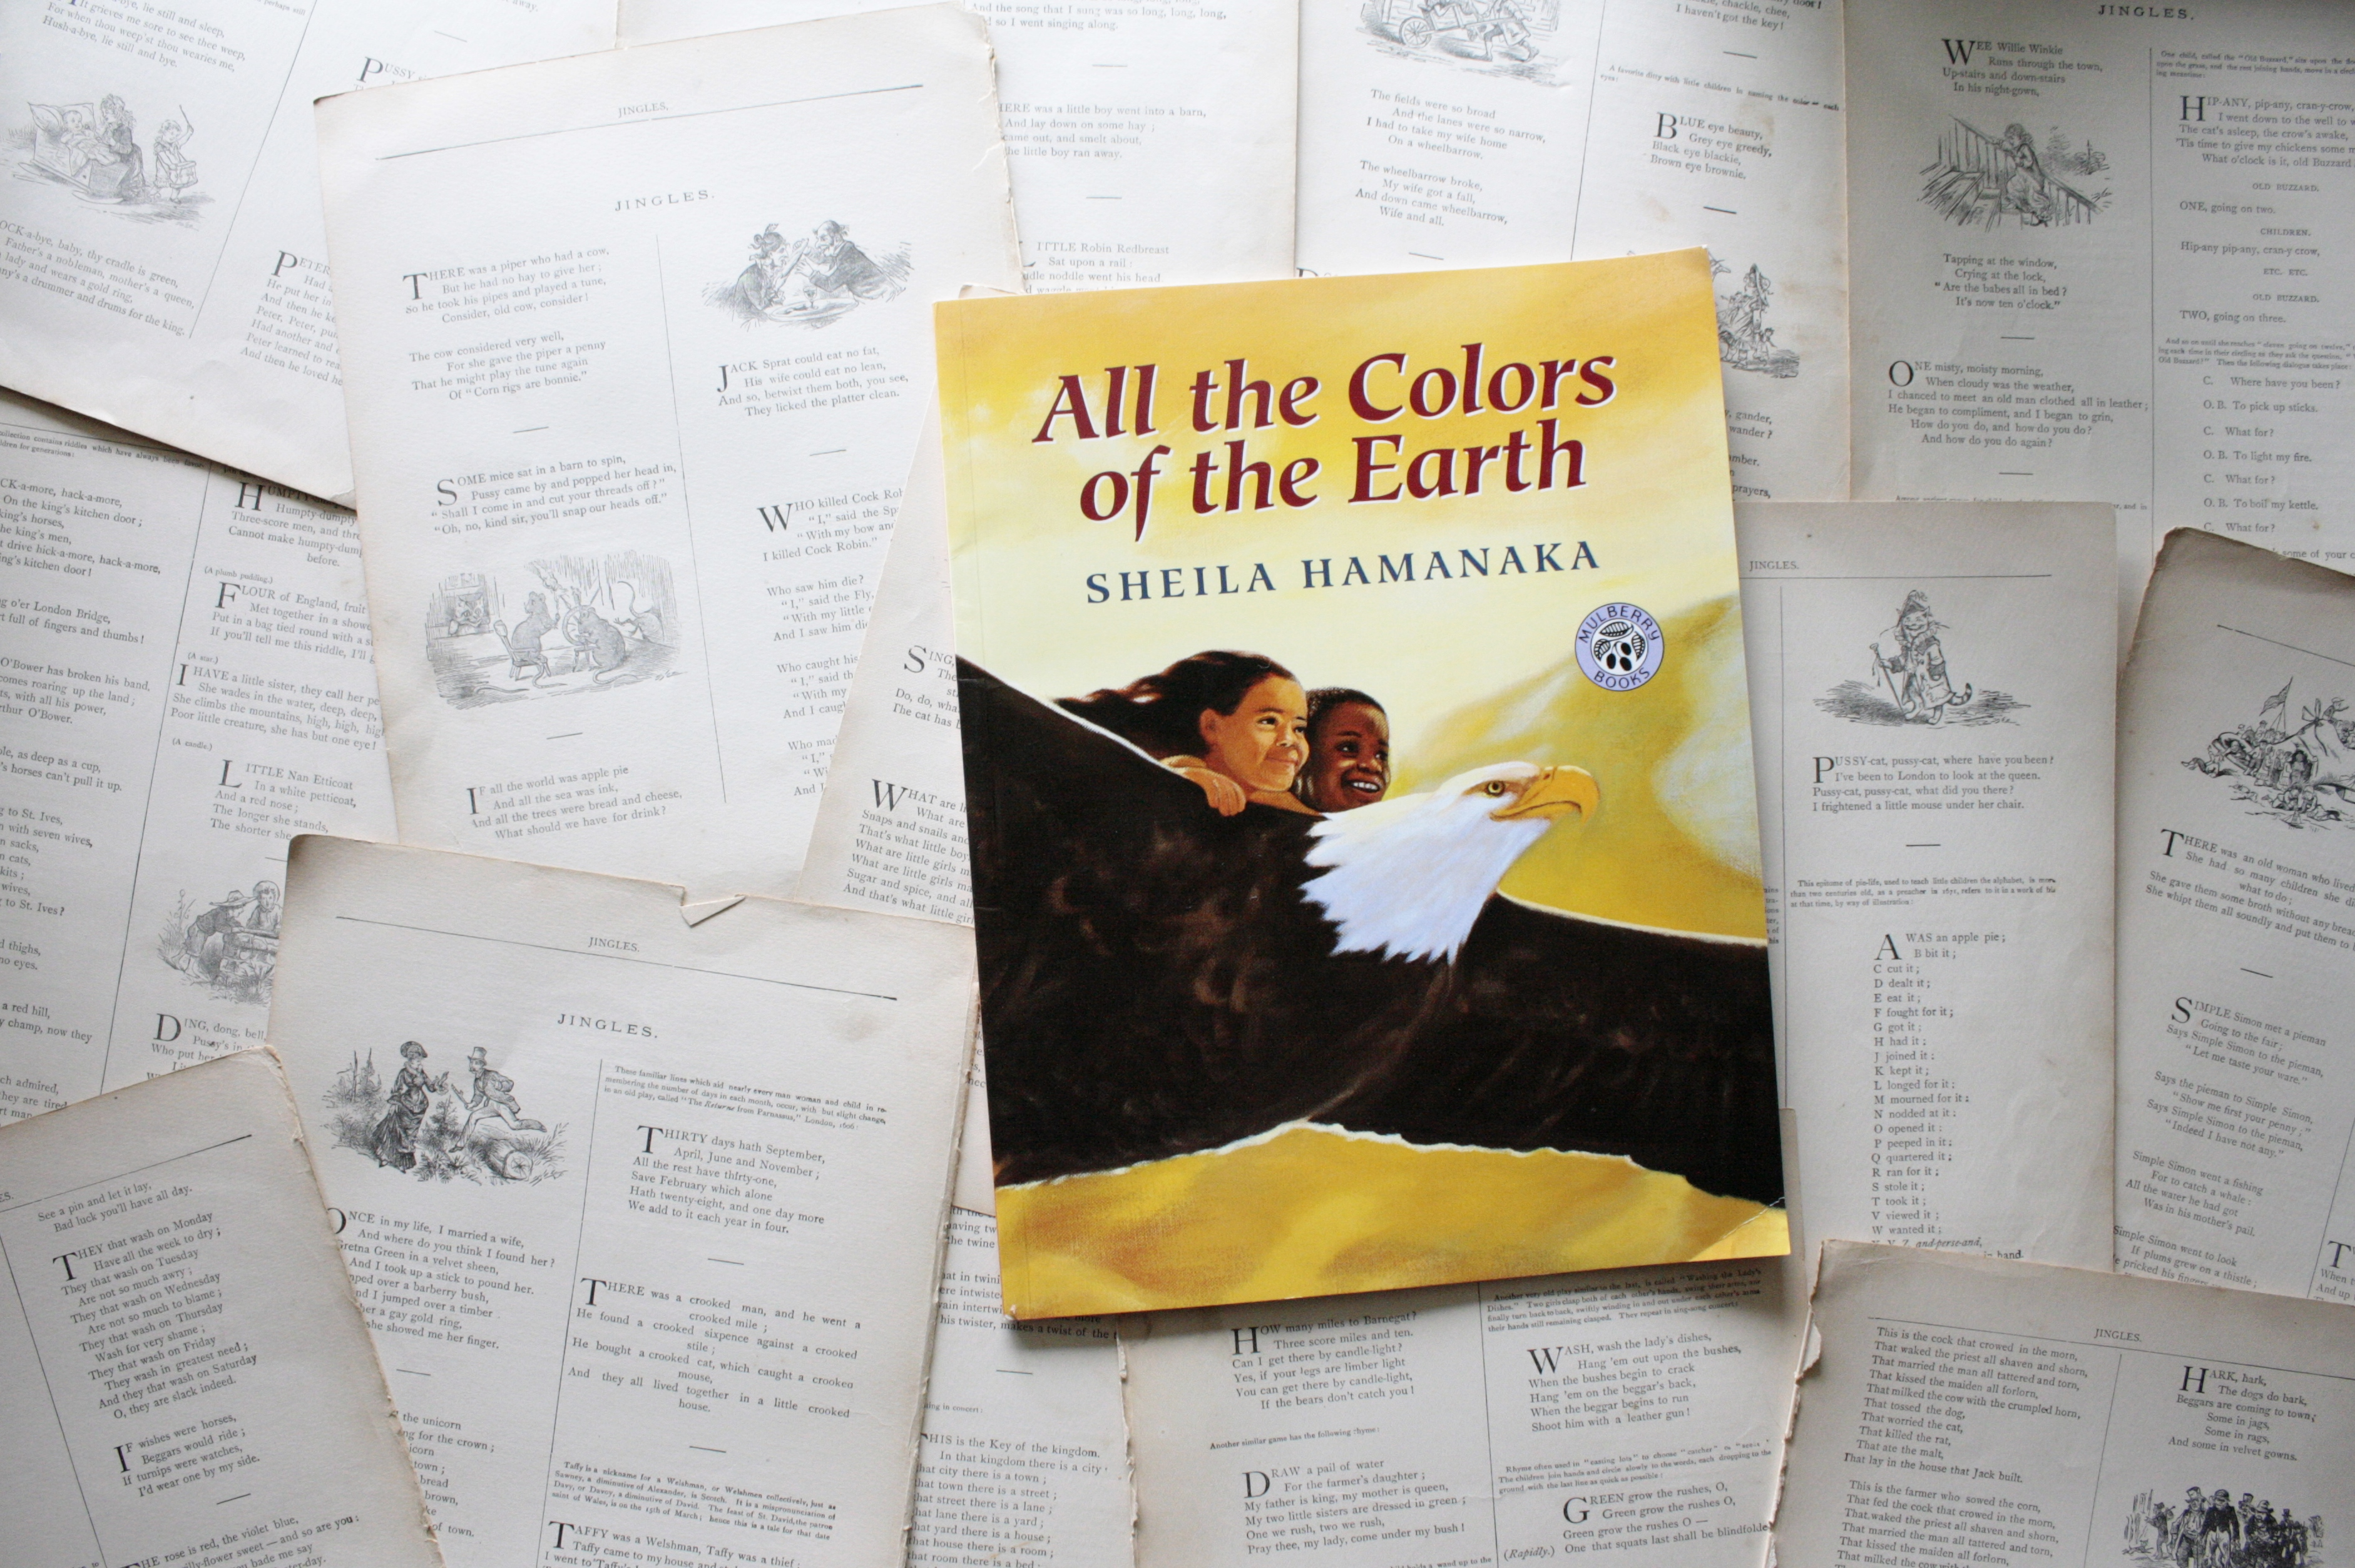 All The Colors of the Earth | Sheila Hamanaka